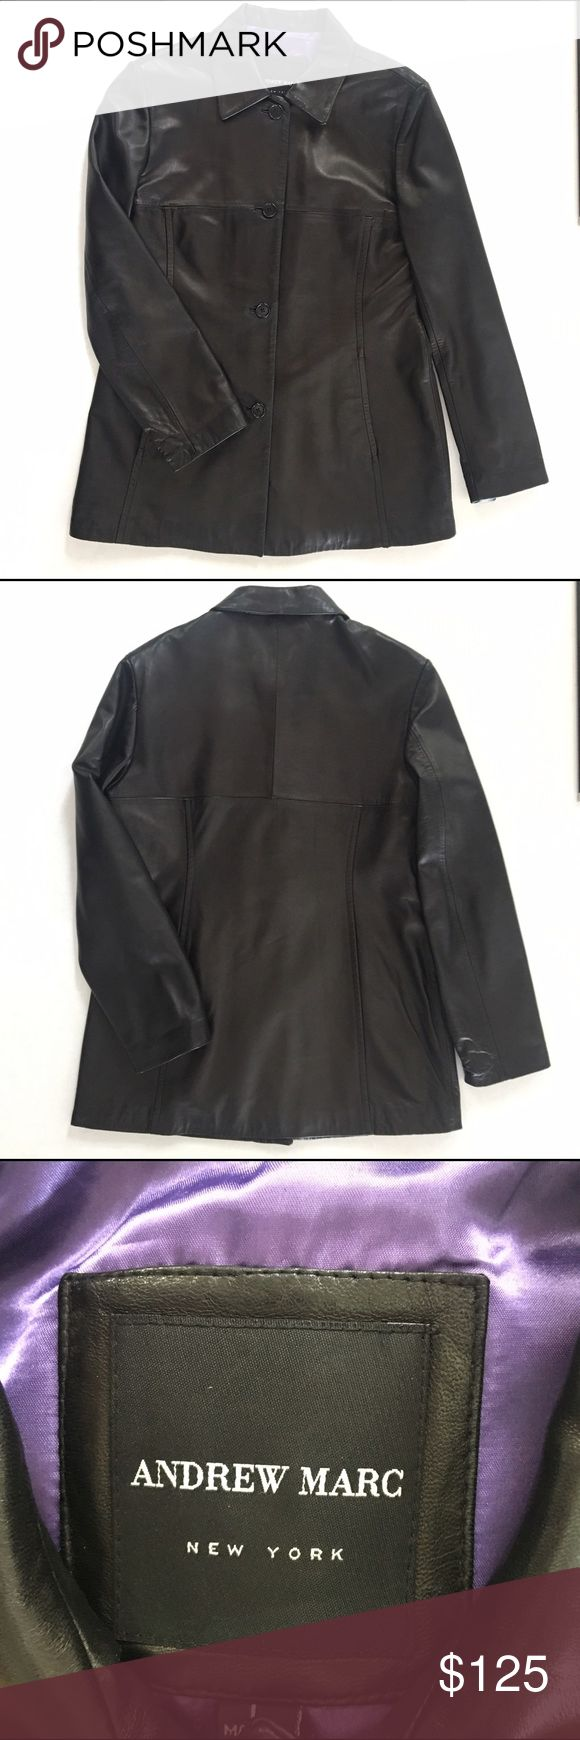 Andrew Marc NWOT Black Leather Lambskin Jacket This feels like the softest thing you've ever felt in your life.    New but without tags. Andrew Marc Jackets & Coats